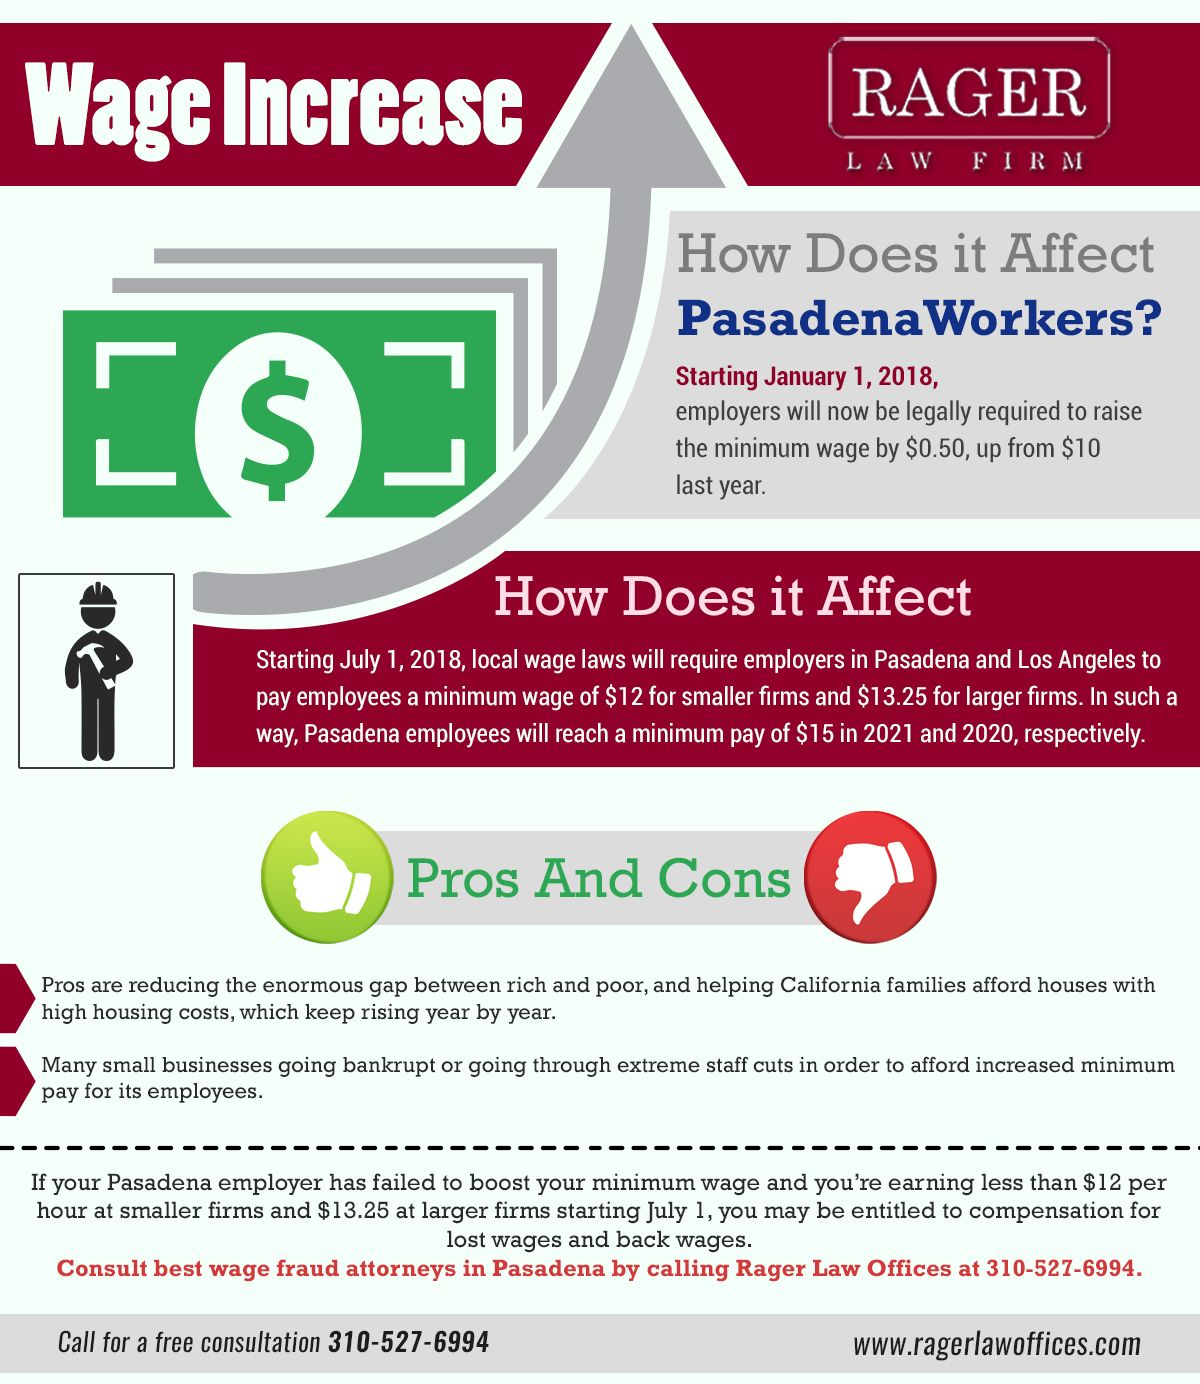 California Is Unrolling New Minimum Wage Requirements Almost Every Year As The State Is On Its Path To Set A Minimum Wage At 12 F Pasadena Attorneys Law Firm